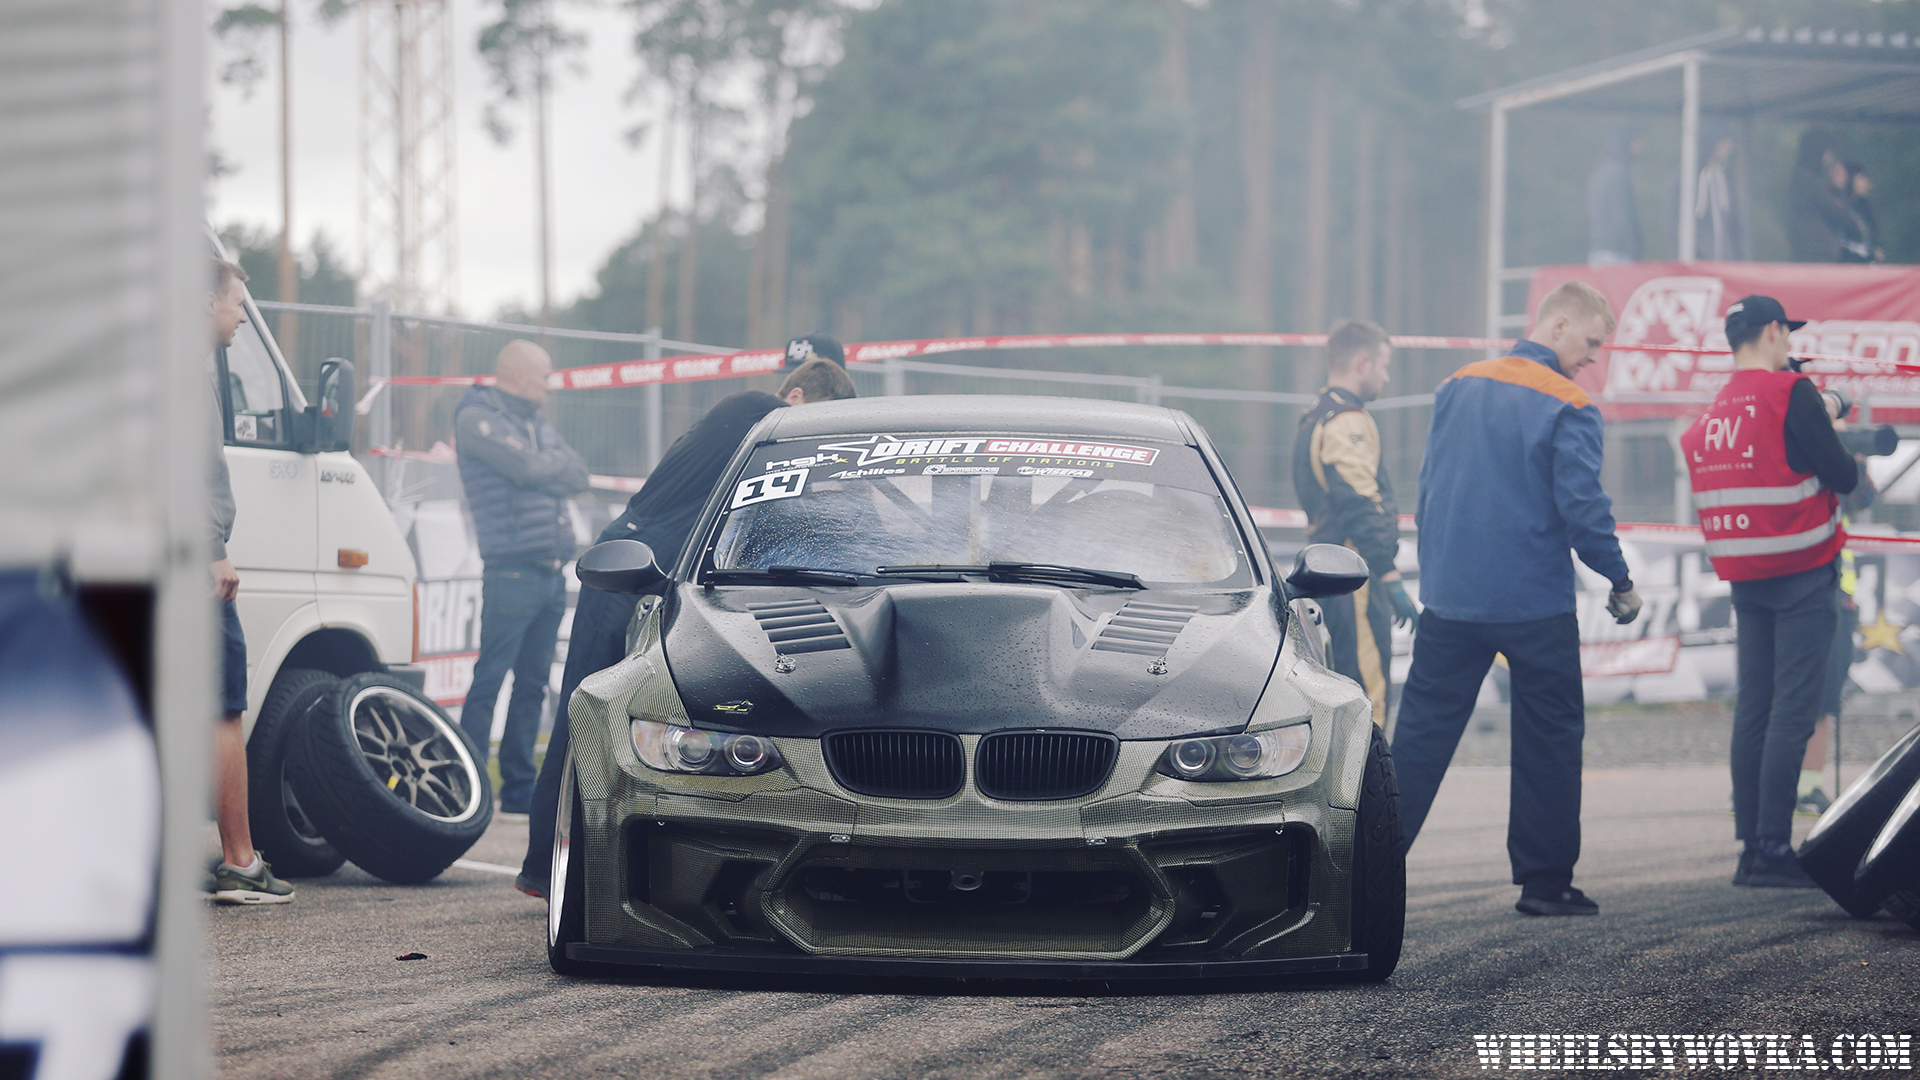 hgk-drift-challenge-2018-by-wheelsbywovka-3